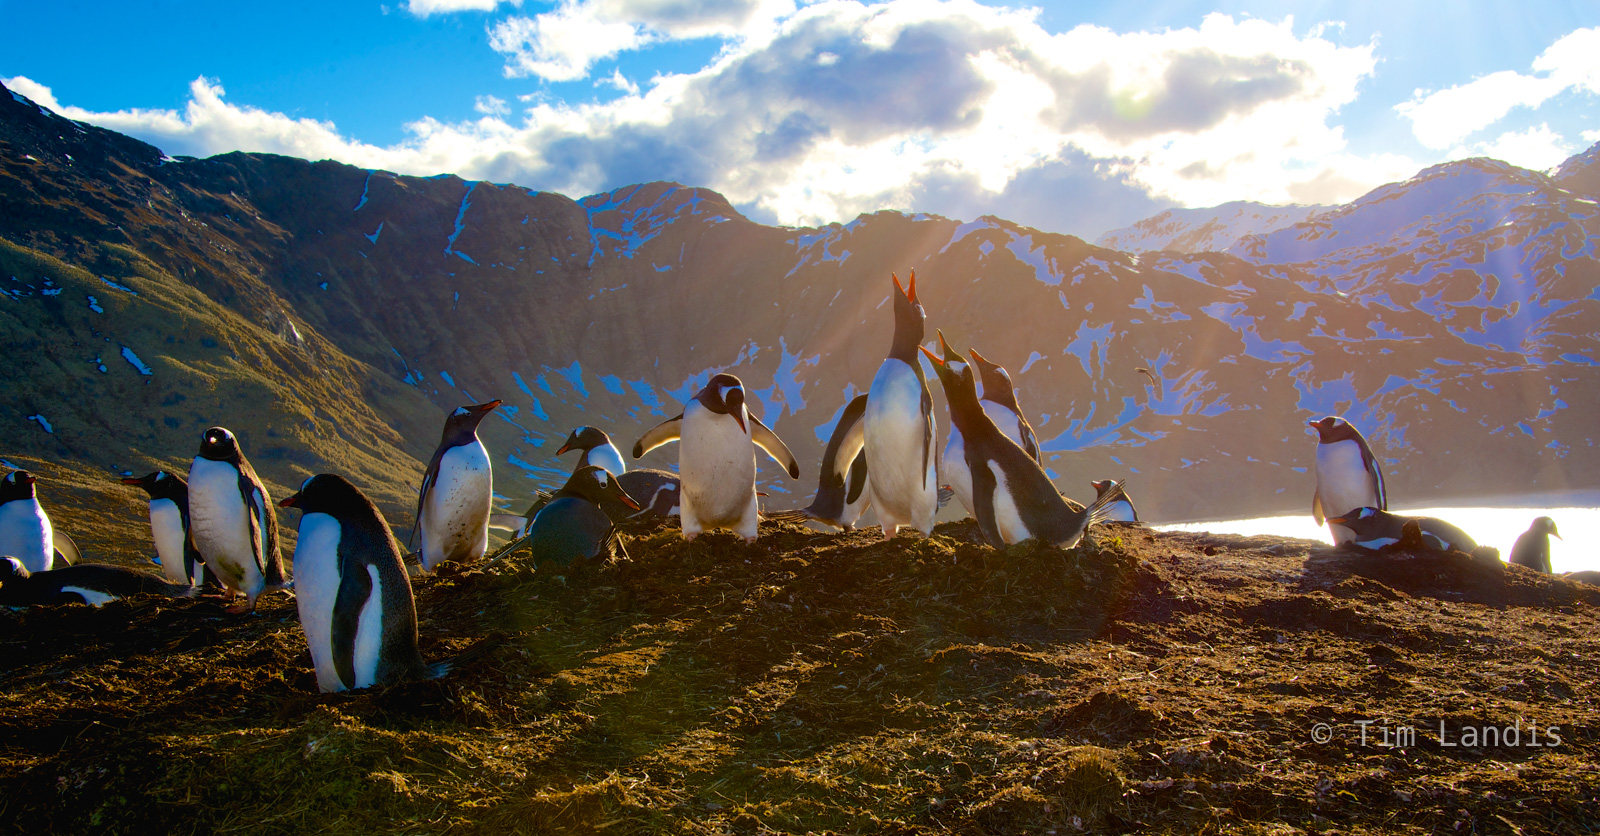 Gentoo penguins, penguin concerto, penguins, photo